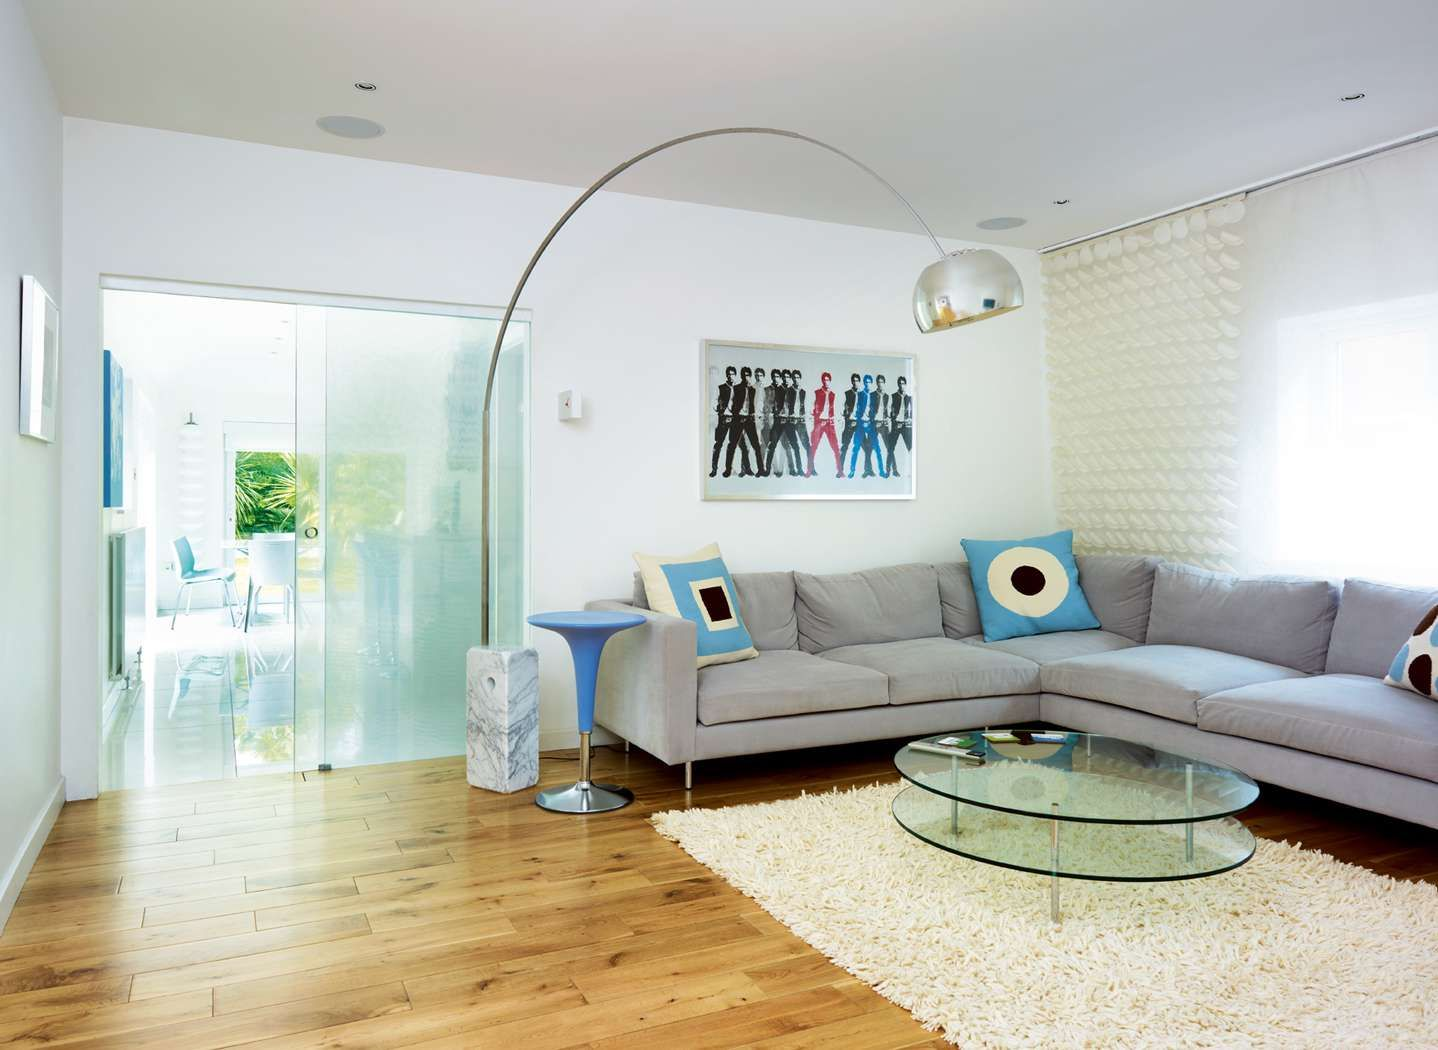 Pocket Doors Are A Great Solution For Open Plan Spaces And Small Rooms  Alike, But